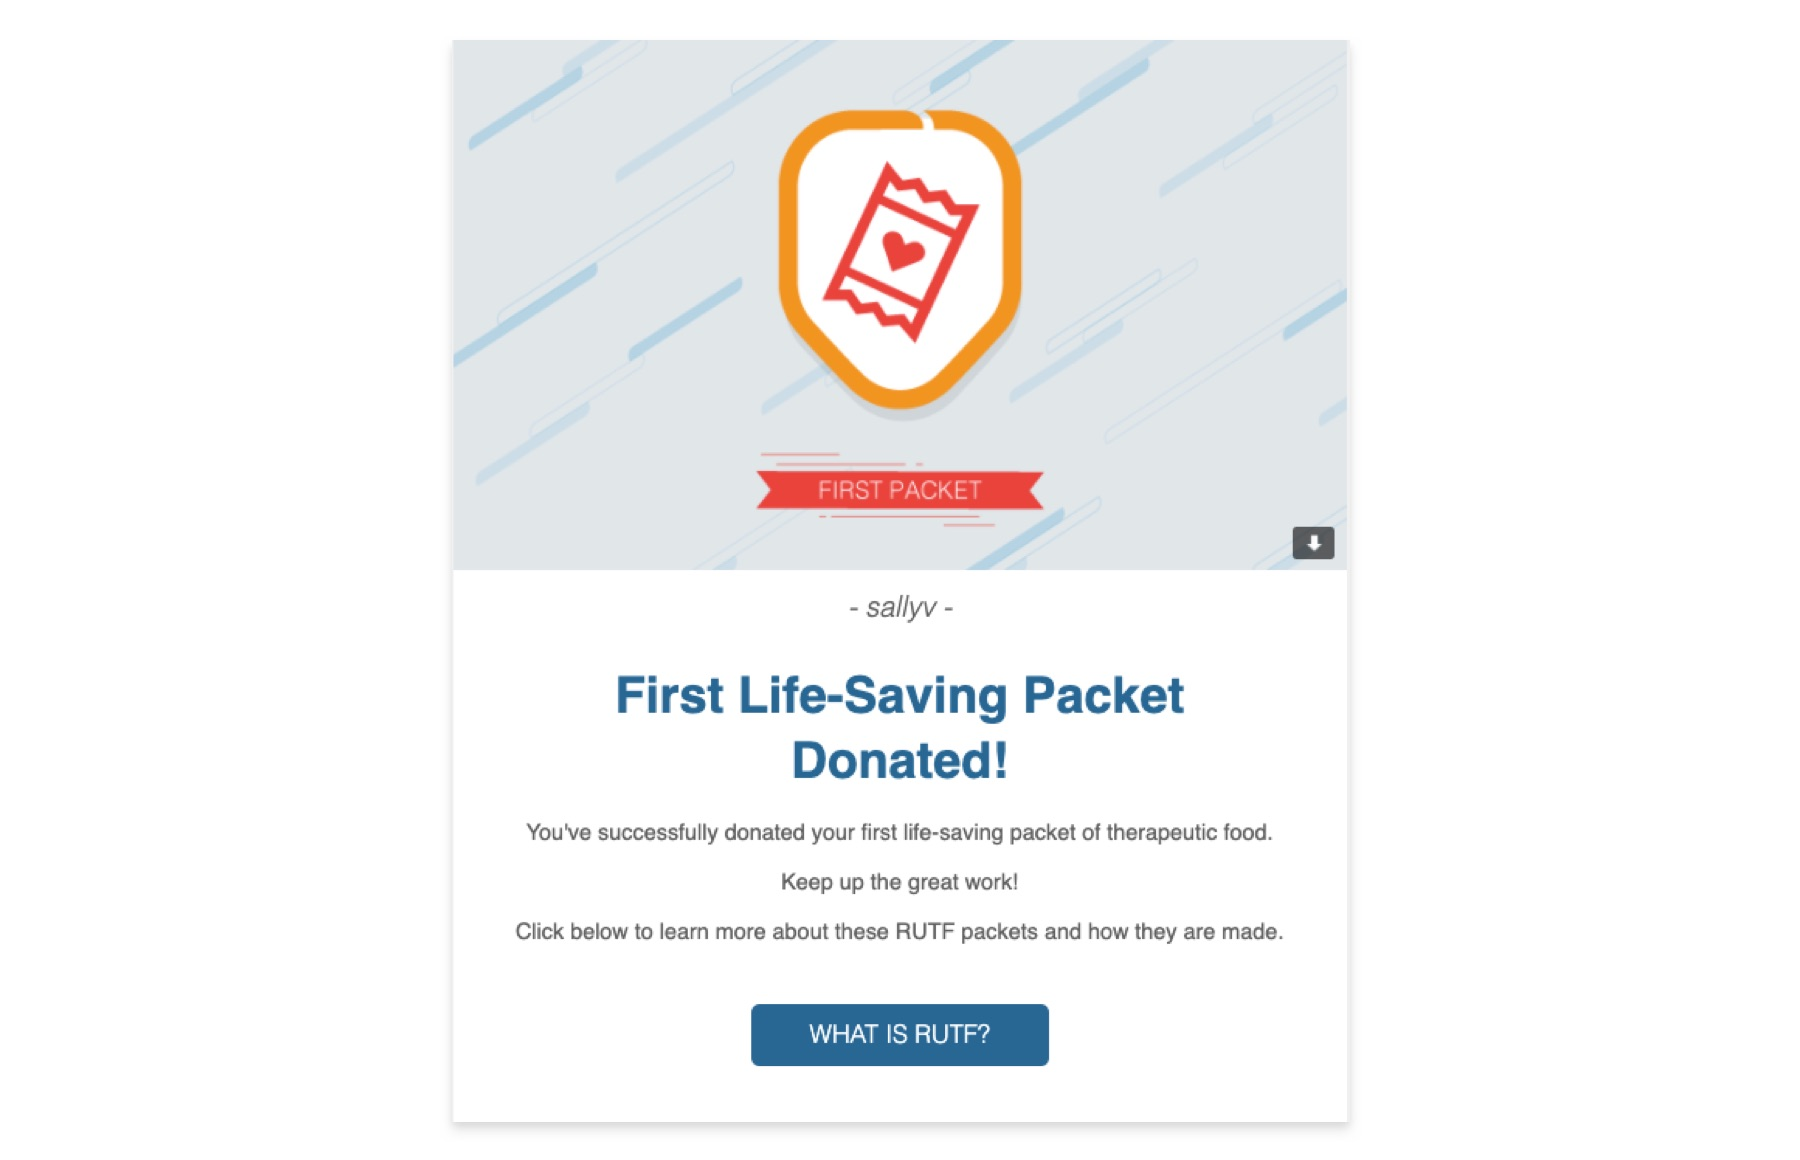 First life-saving packet email notification